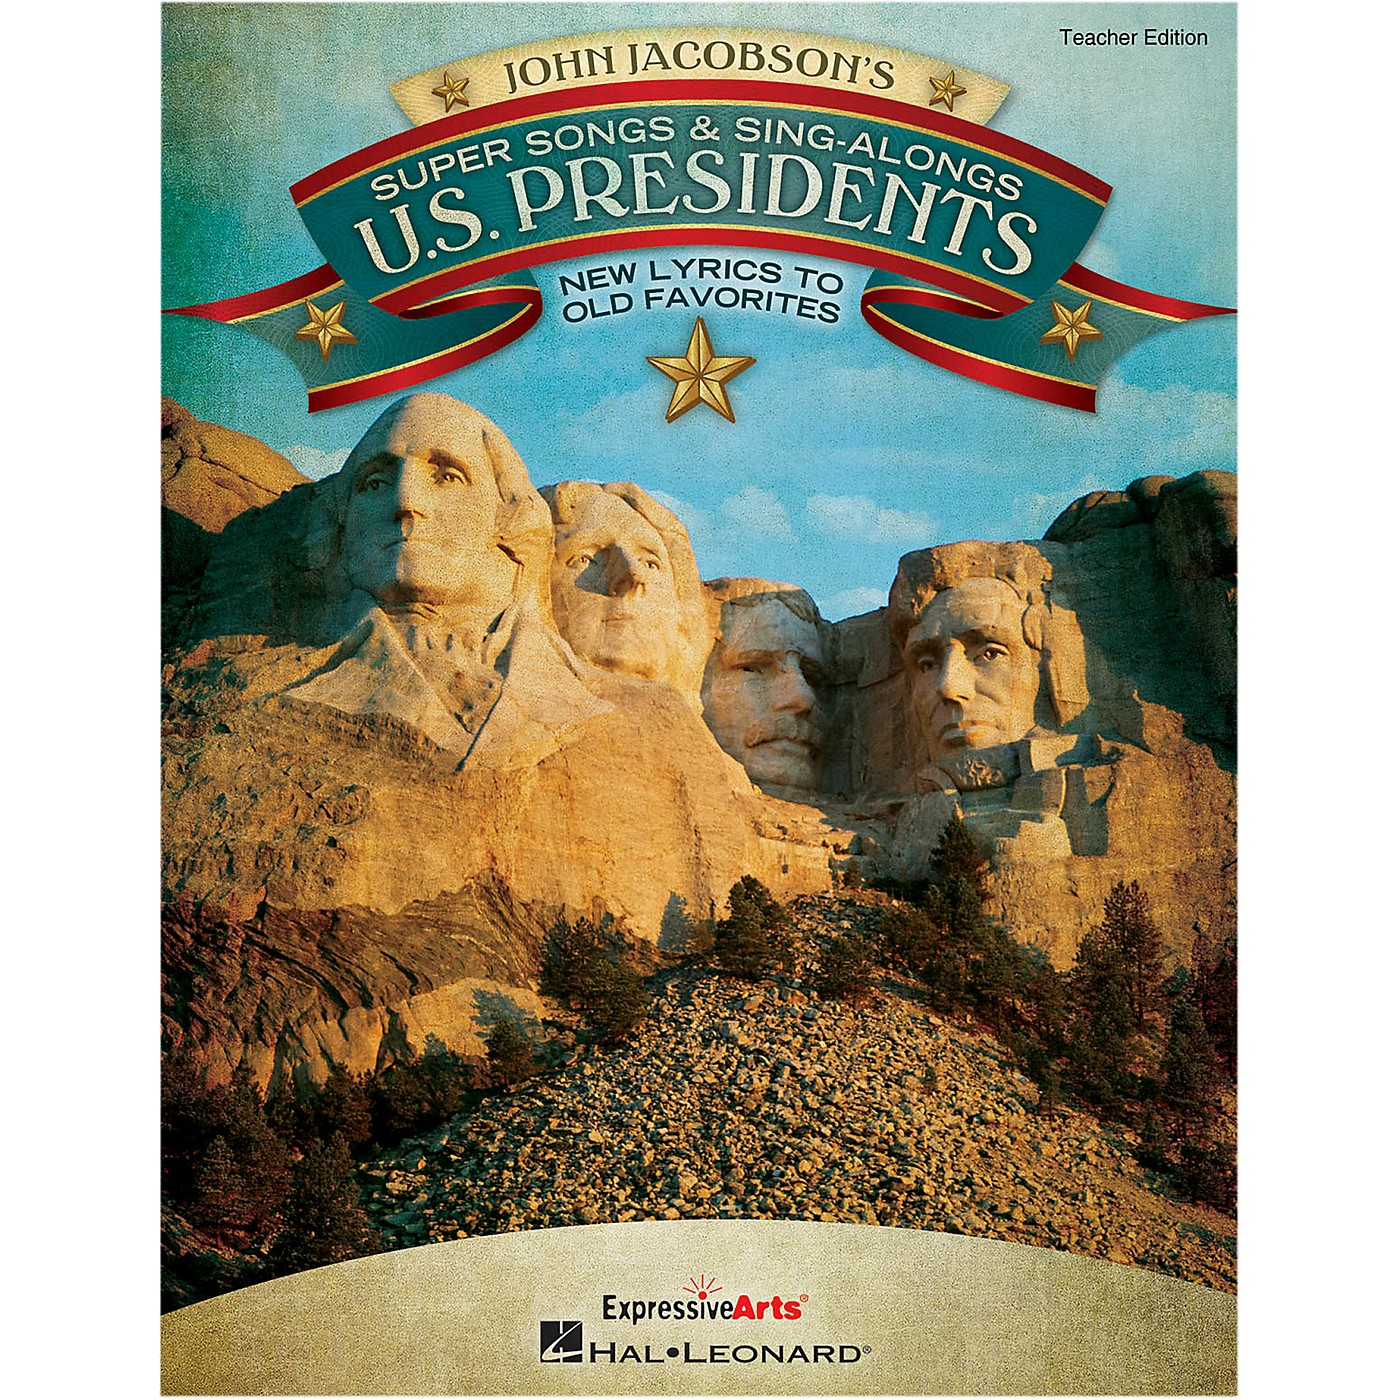 Hal Leonard Super Songs And Sing-Alongs: U.S. Presidents - New Lyrics to Old Favorites Teacher Edition thumbnail